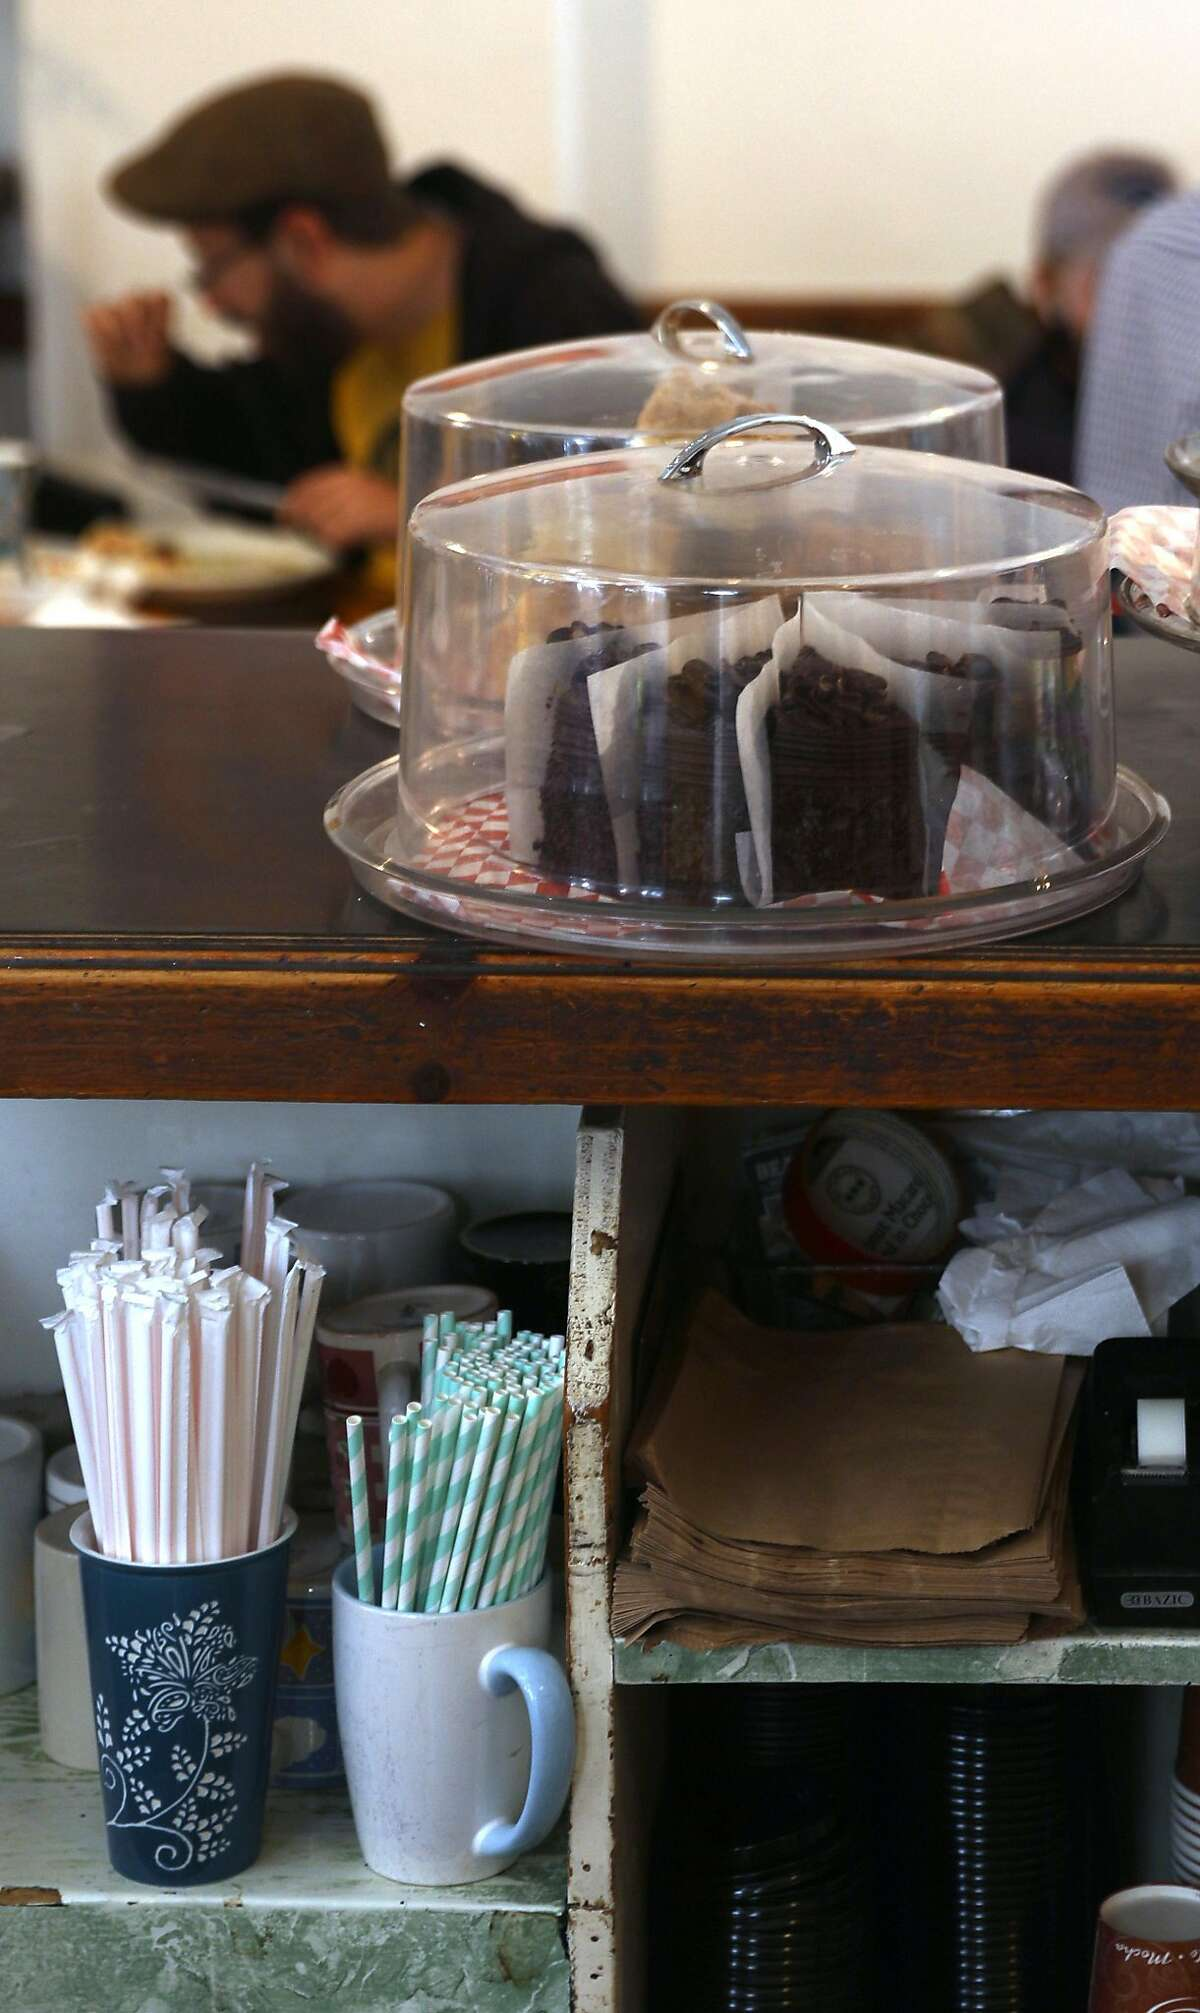 Cafe International has their paper and plastic straws seen stored behind the counter long on Tuesday, July 9, 2019, in San Francisco, Calif. The team from the San Francisco Dept. of the Environment go door to door to let restaurants know about the new law that started July 1, under which restaurants cannot automatically give out plastic utensils, napkins, condiment packages and other disposable items to diners, whether eat-in or take-in. They can give out the items upon request or can offer them in a self-serve area.